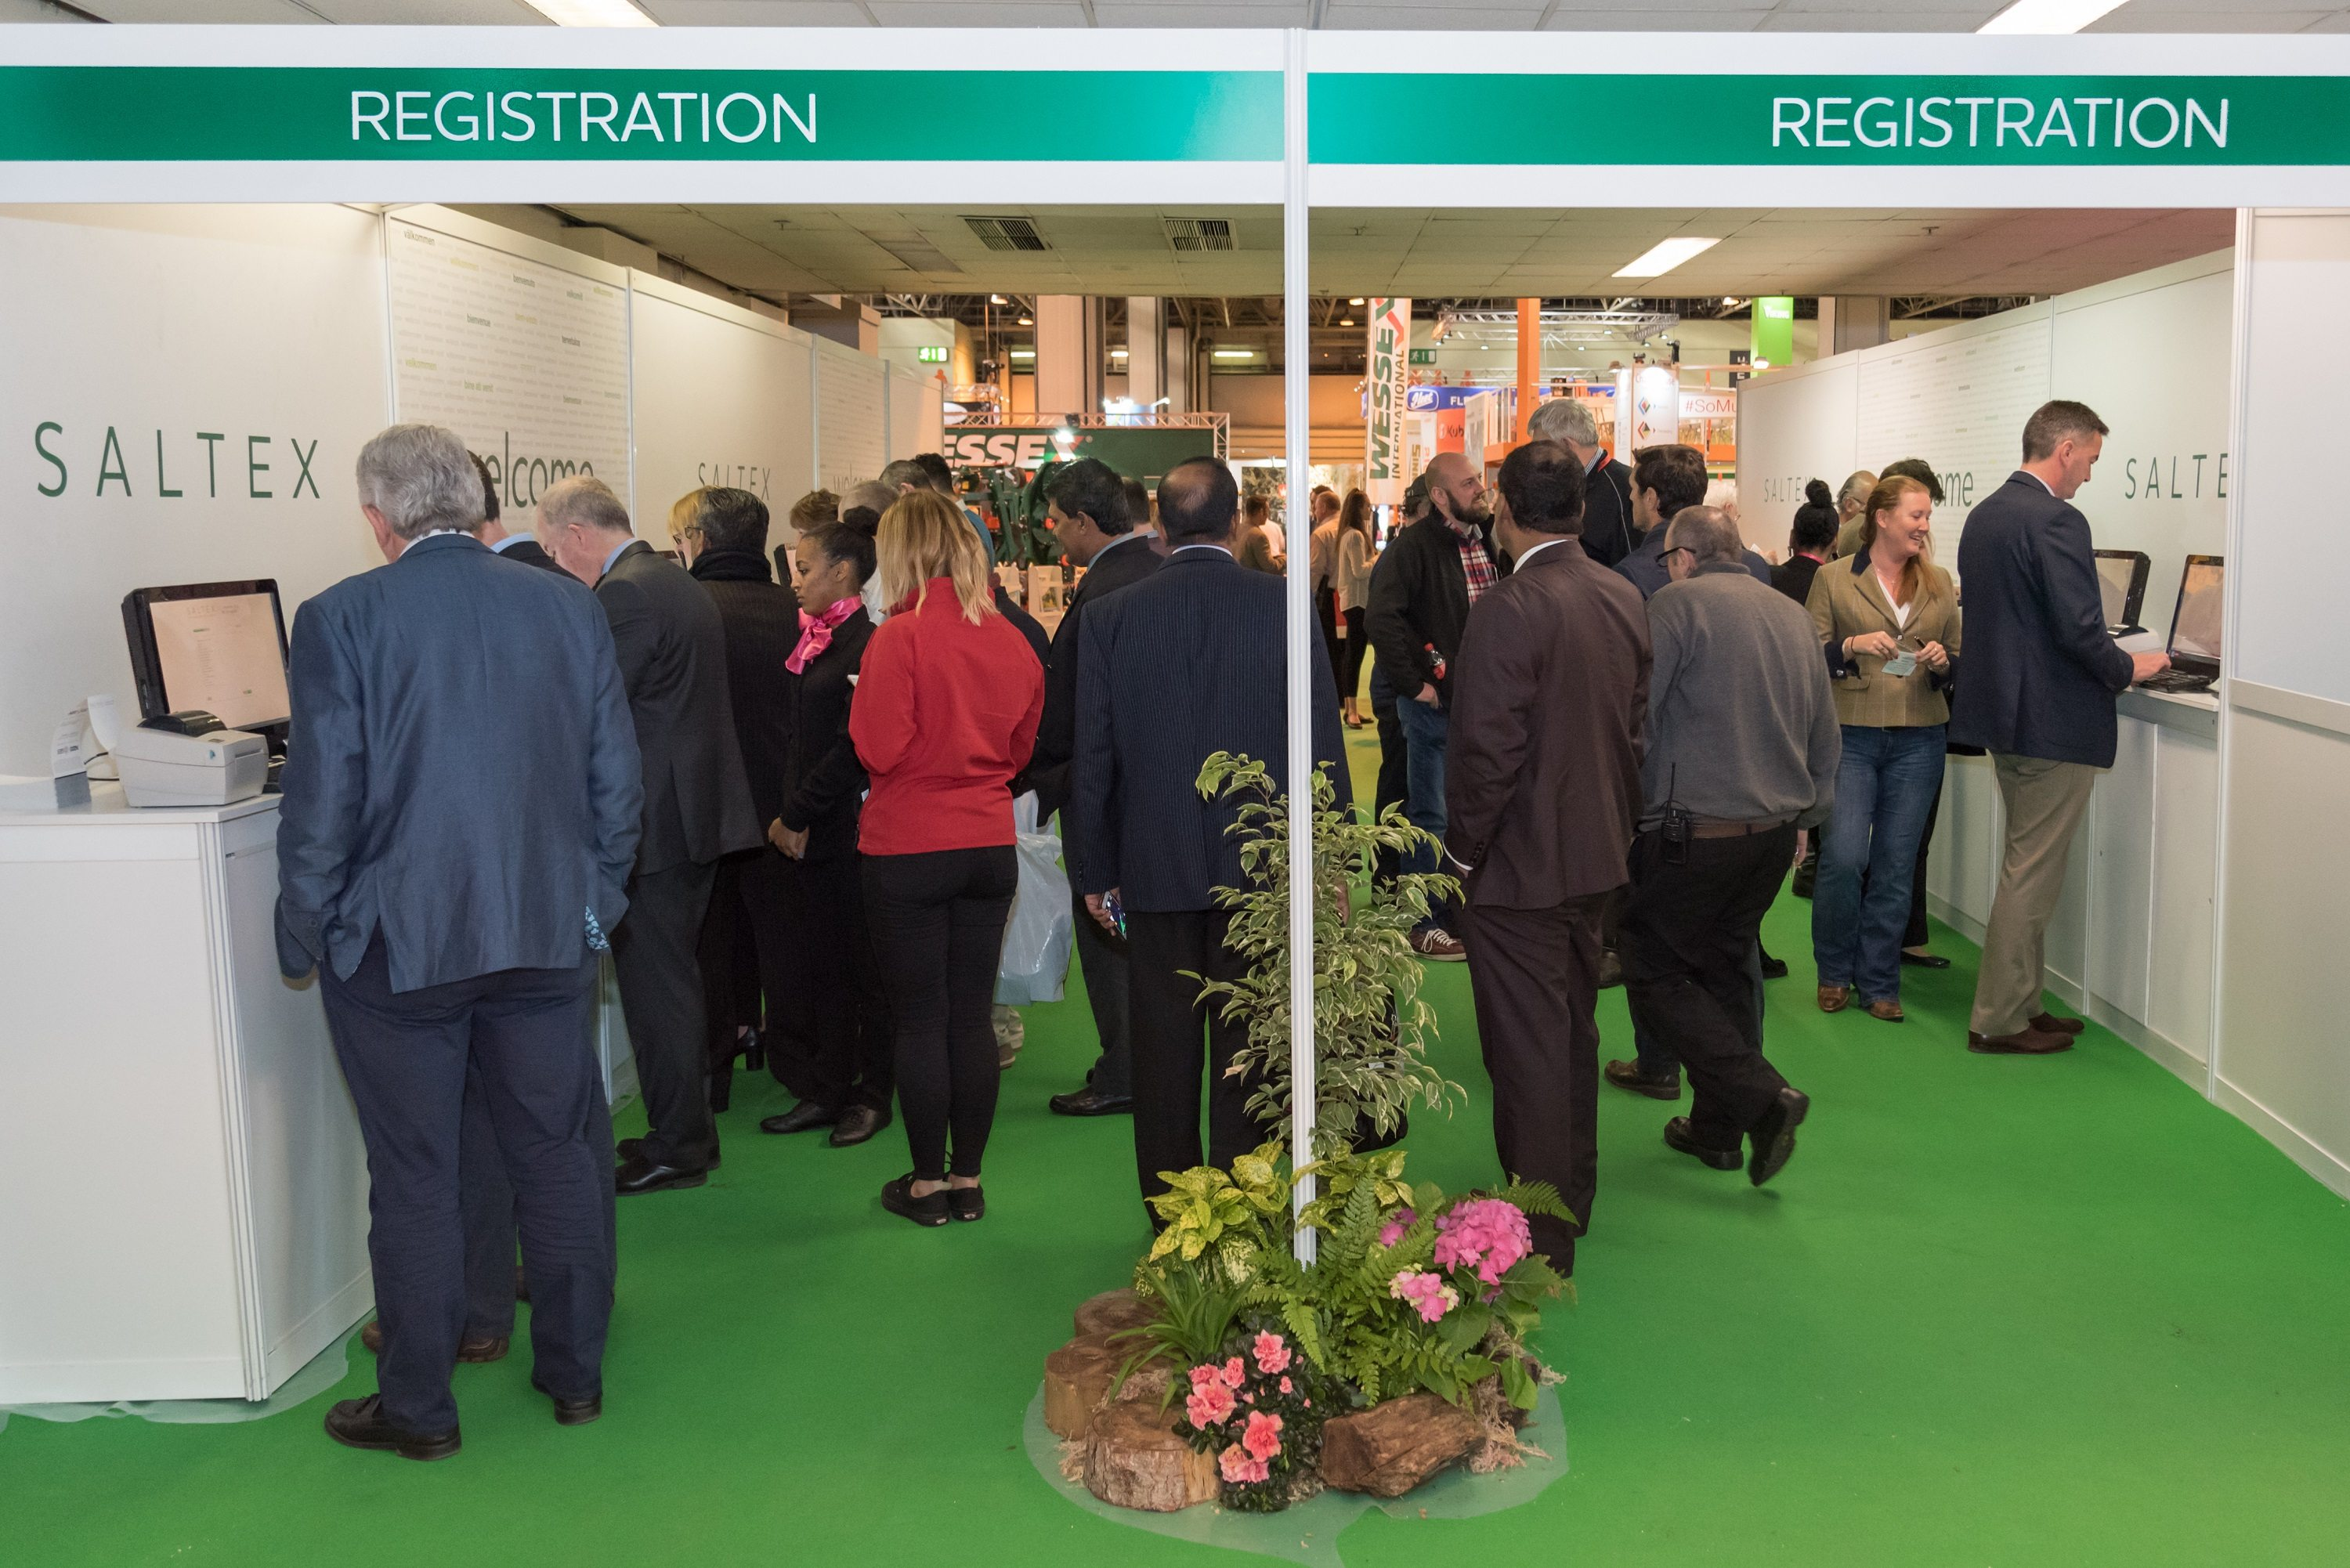 SALTEX 2017 'YOUR INDUSTRY YOUR SHOW' visitor registration now open